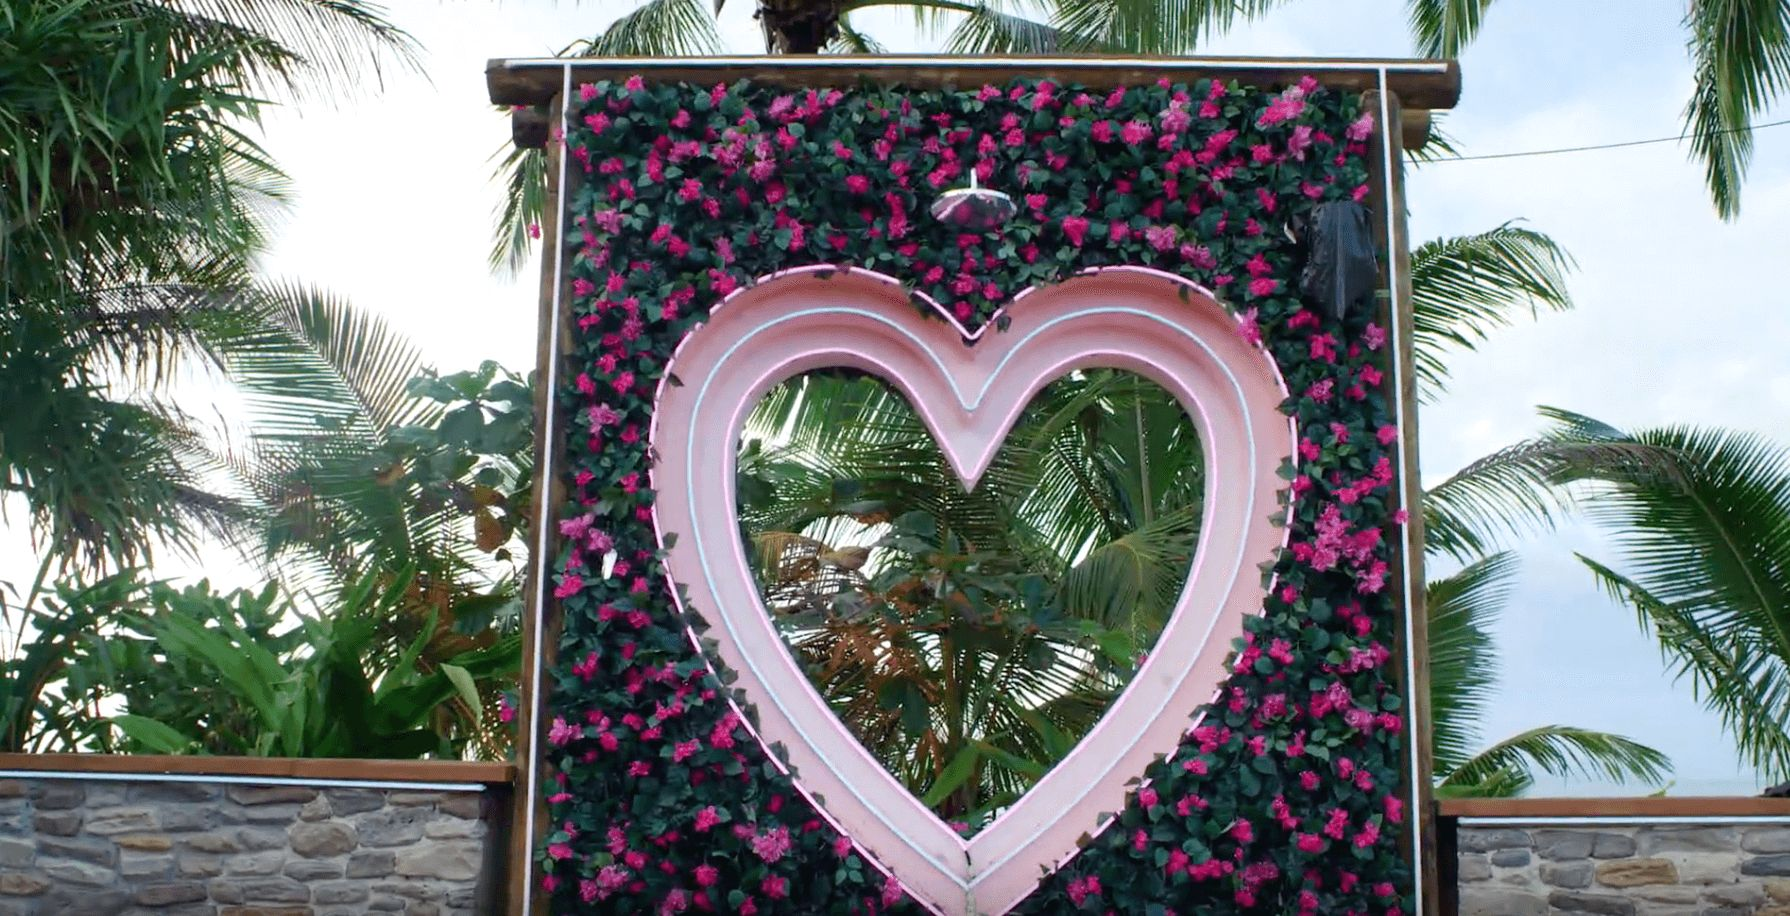 Image may contain: Love Island USA villa, Love Island USA, villa, Love Island, CBS, Garden, Outdoors, Arbour, Tree, Plant